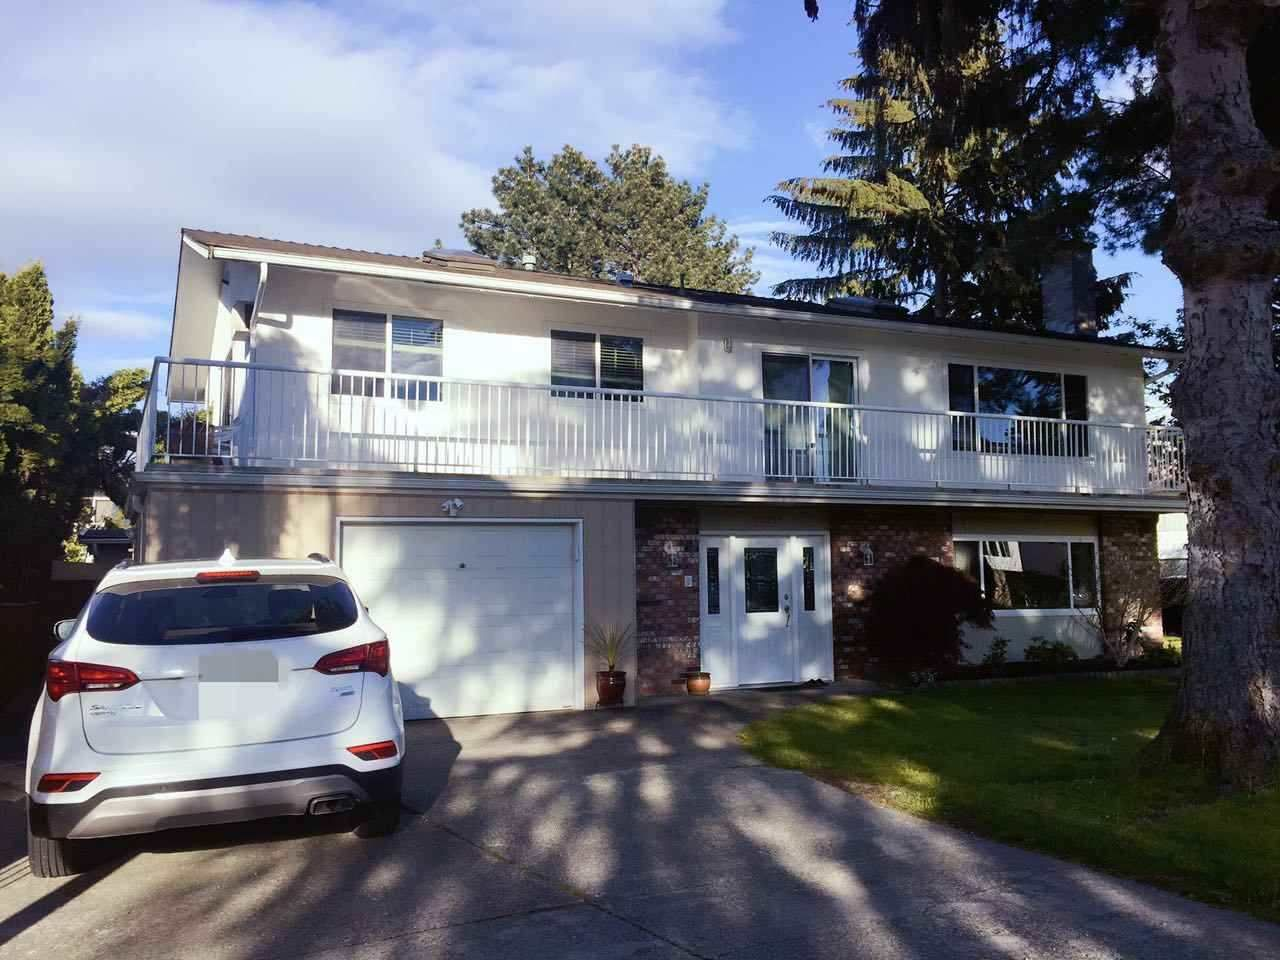 Main Photo: 10991 DENNIS Crescent in Richmond: McNair House for sale : MLS®# R2188006